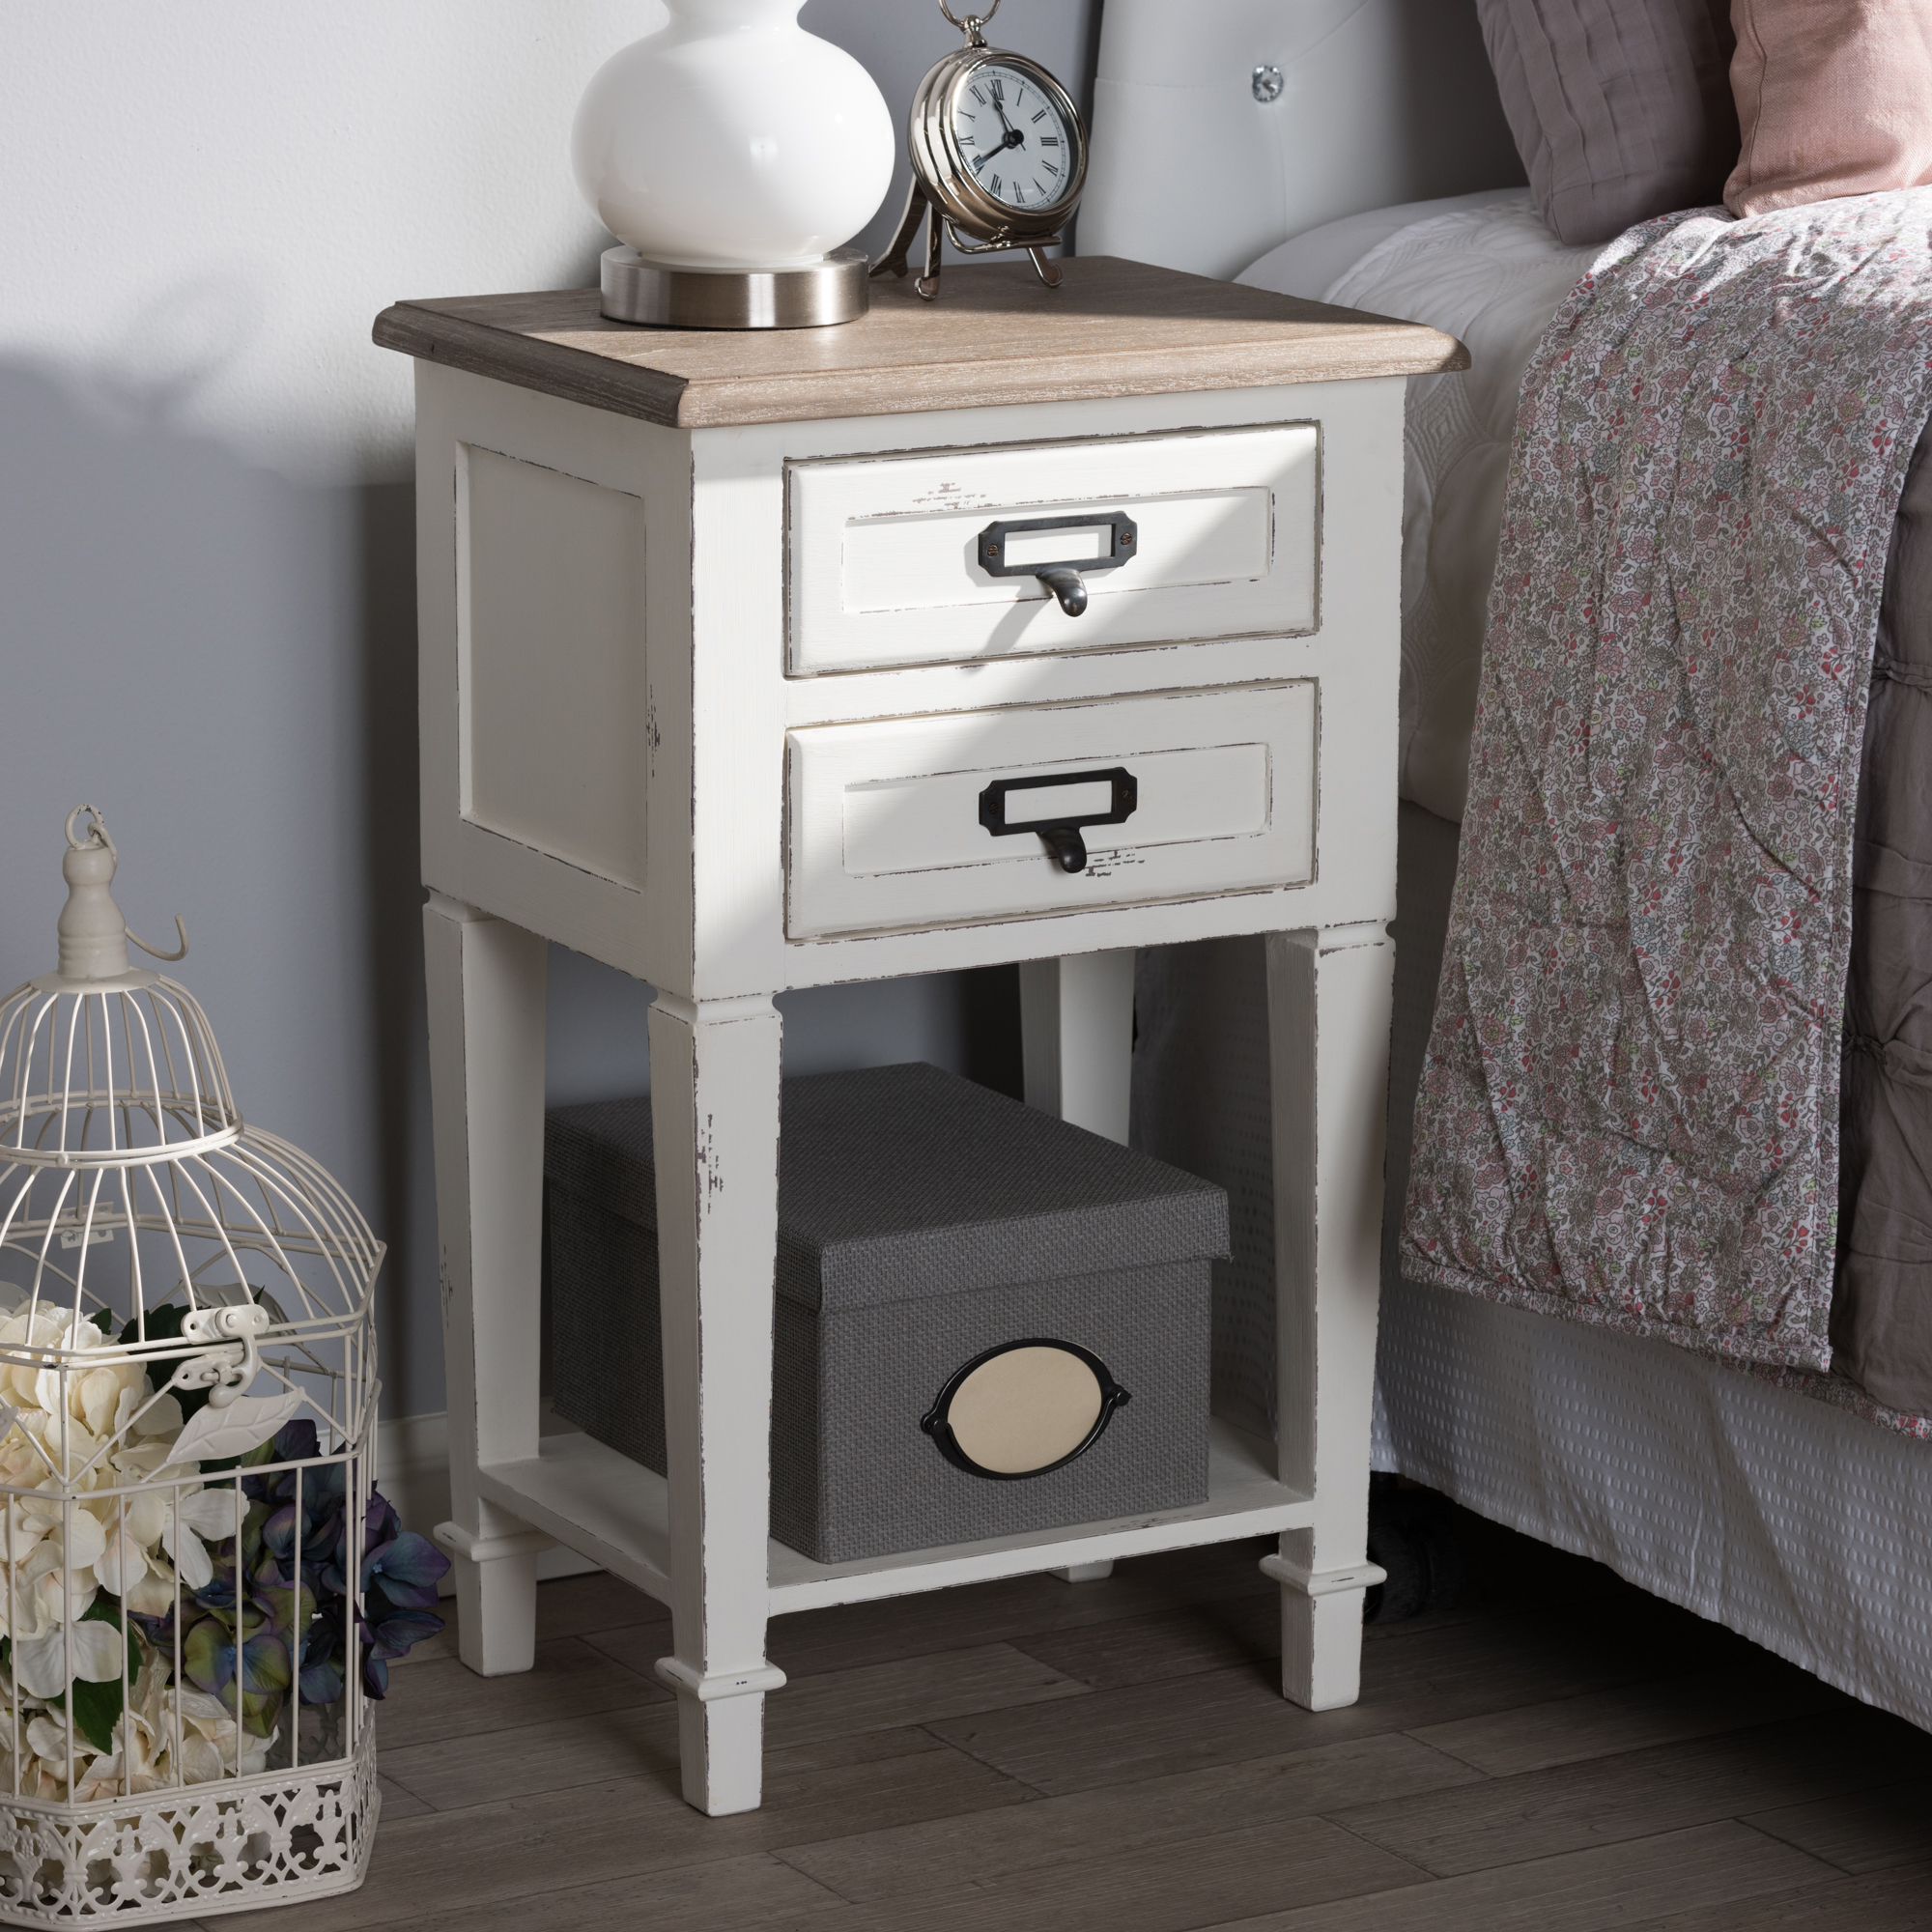 house blaise for summer dresser blog wood weathered unfurnished img an